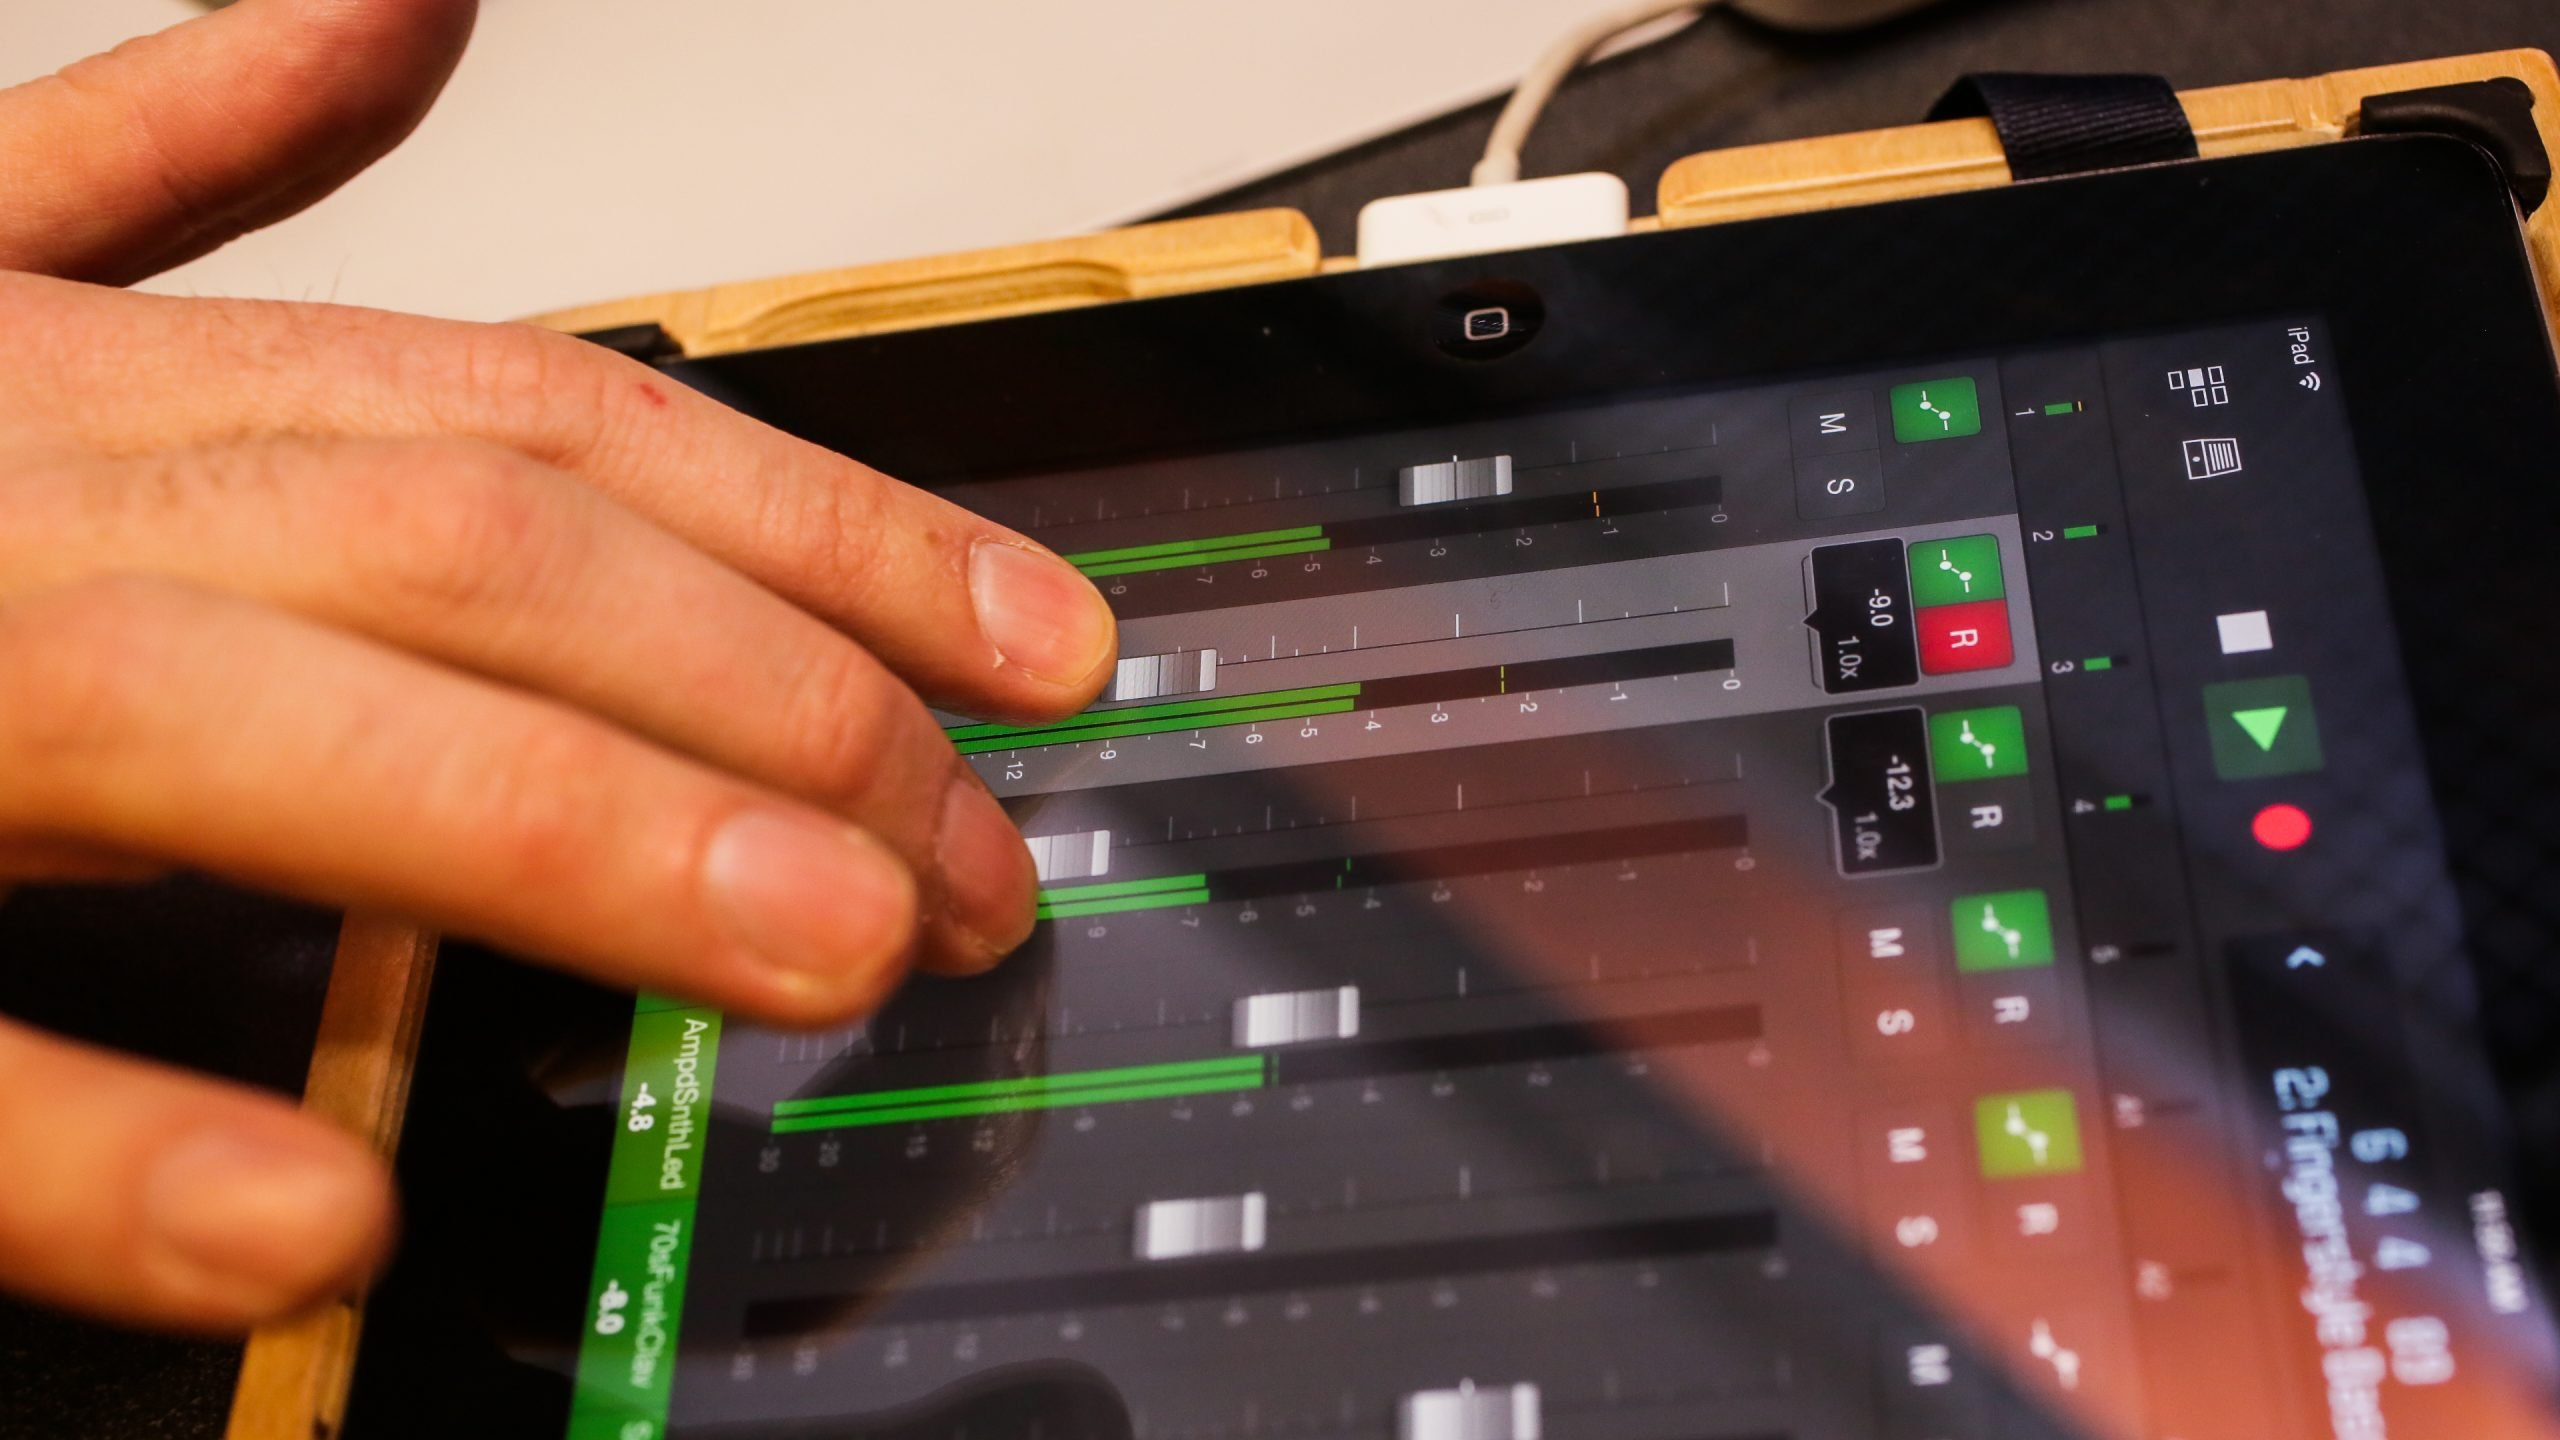 Logic Pro X is updated to version 10.4 and brings new features such as a vintage equalizer